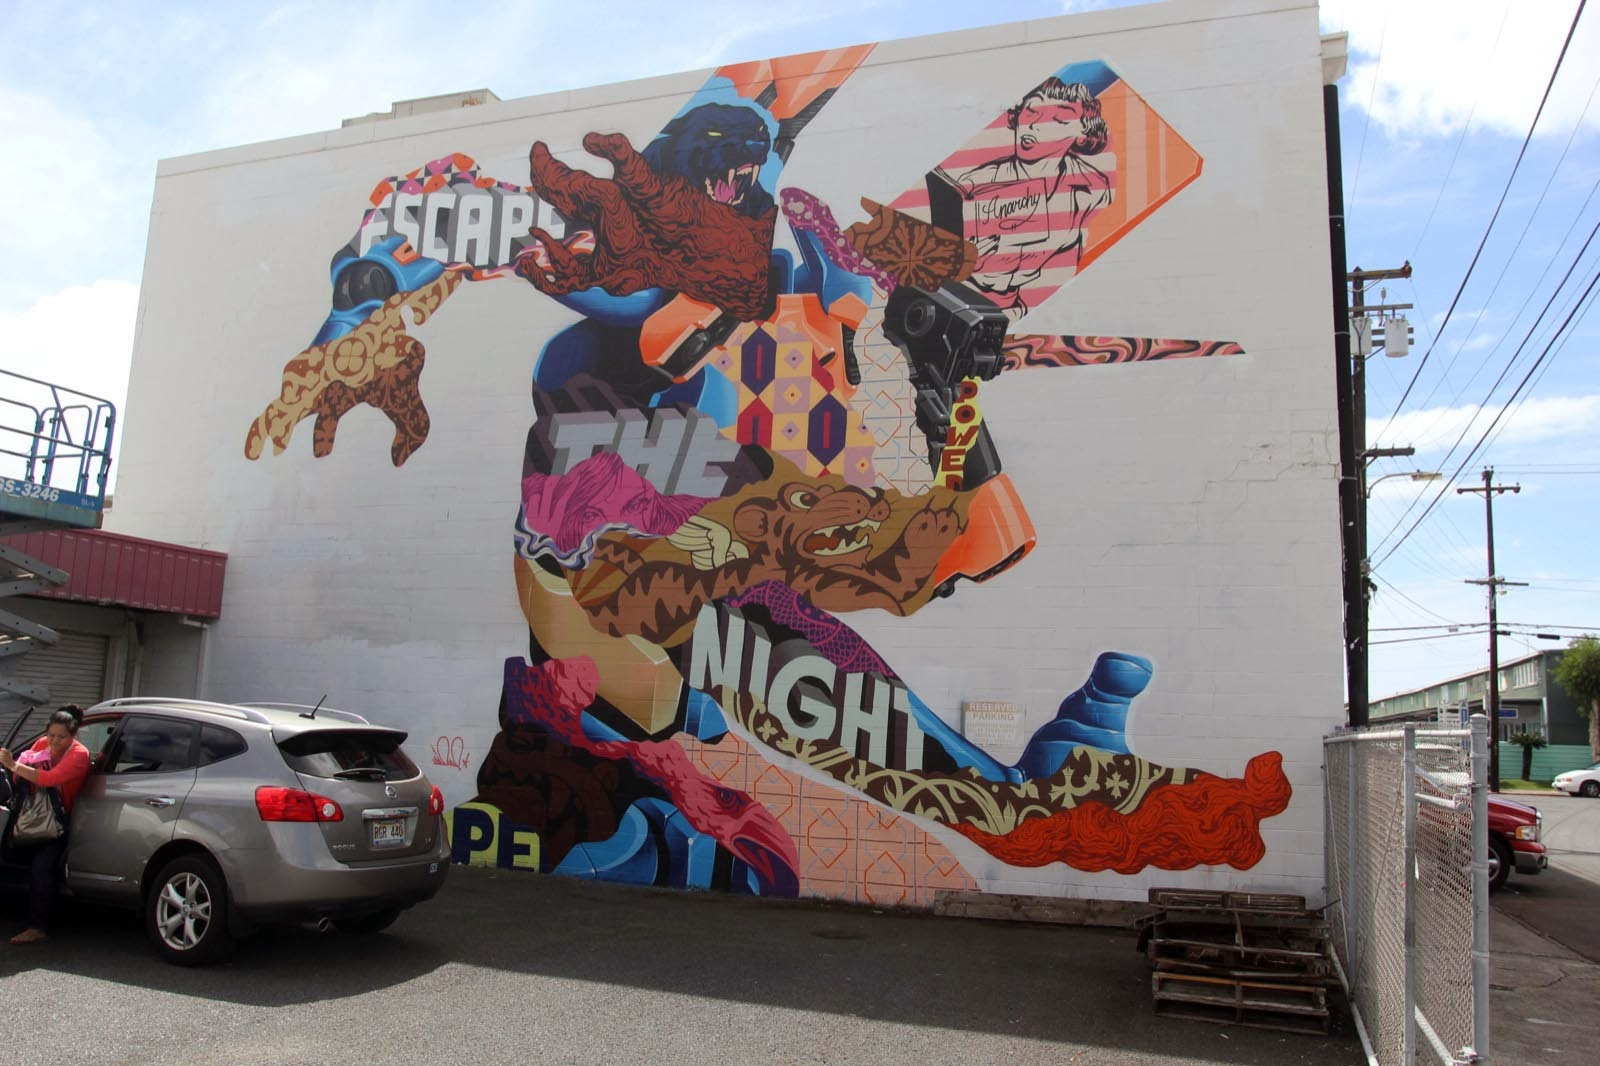 Tristan Eaton was also part of the line-up of POW! WOW! Hawaii 2014 where he spent a few days in Honolulu working on this massive street art piece. 1